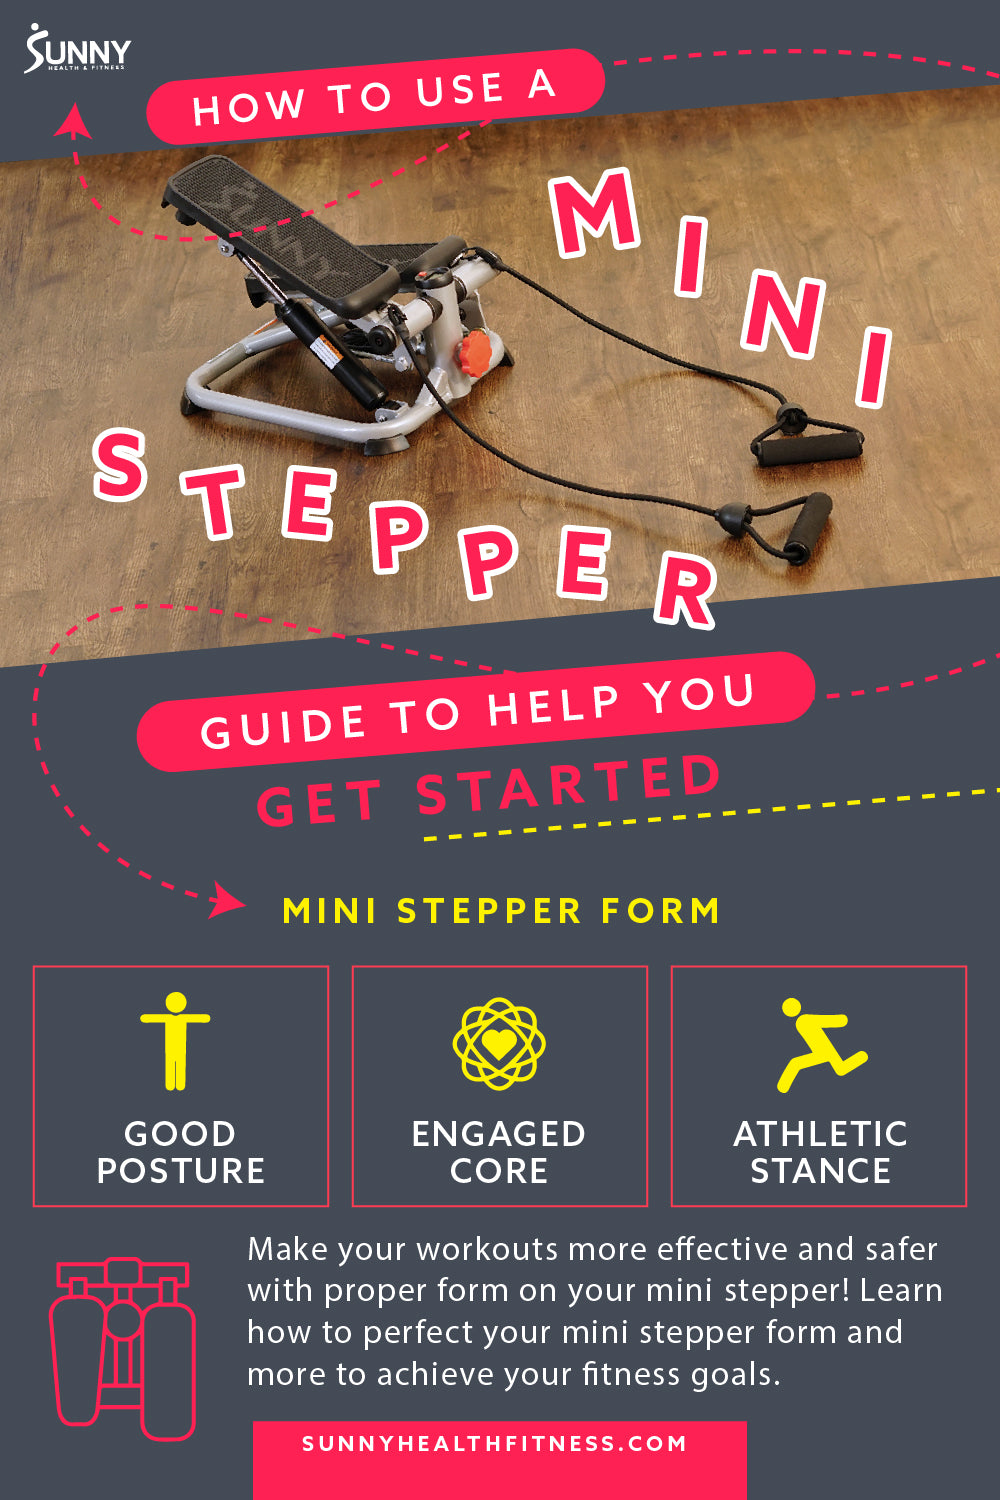 How to Use a Mini Stepper